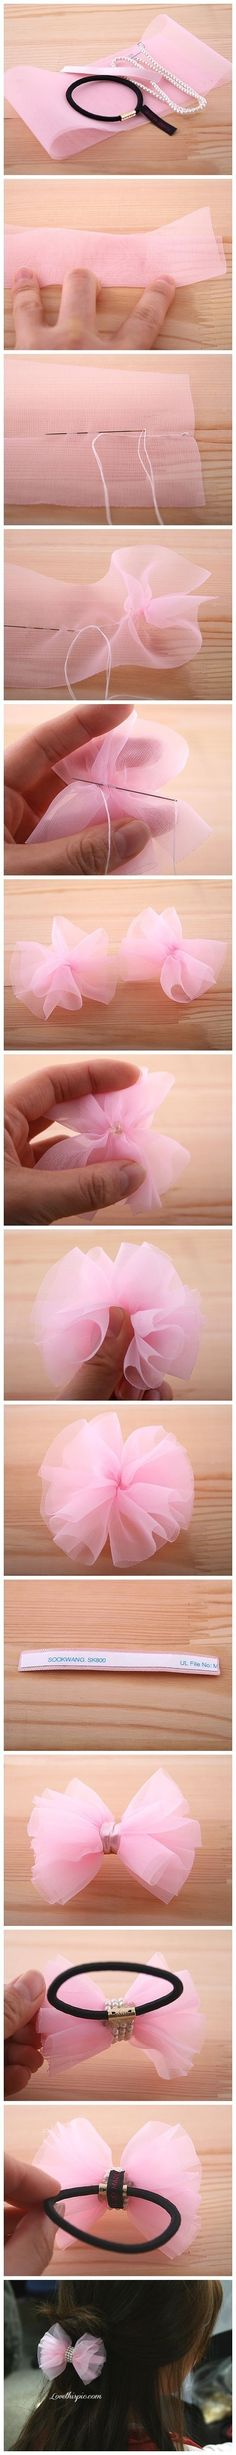 DIY Hair Bow Pictures, Photos, and Images for Facebook, Tumblr, Pinterest, and Twitter